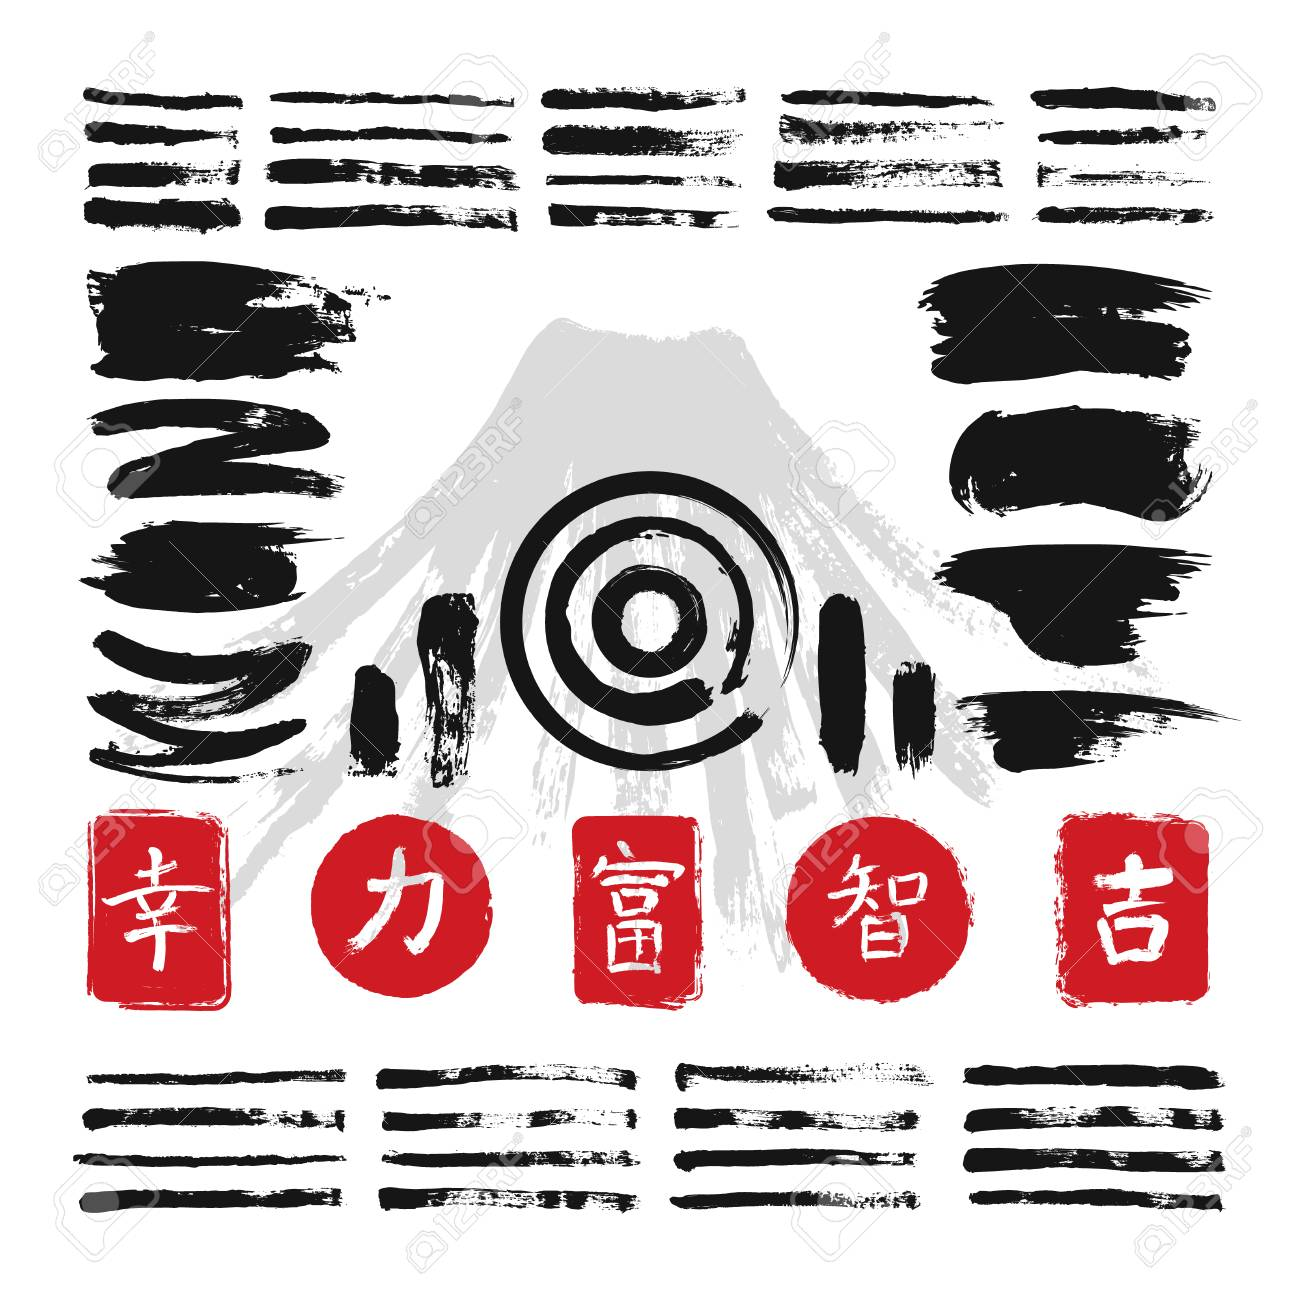 Ink Calligraphy Brushes With Japanese Or Chinese Symbols Vector